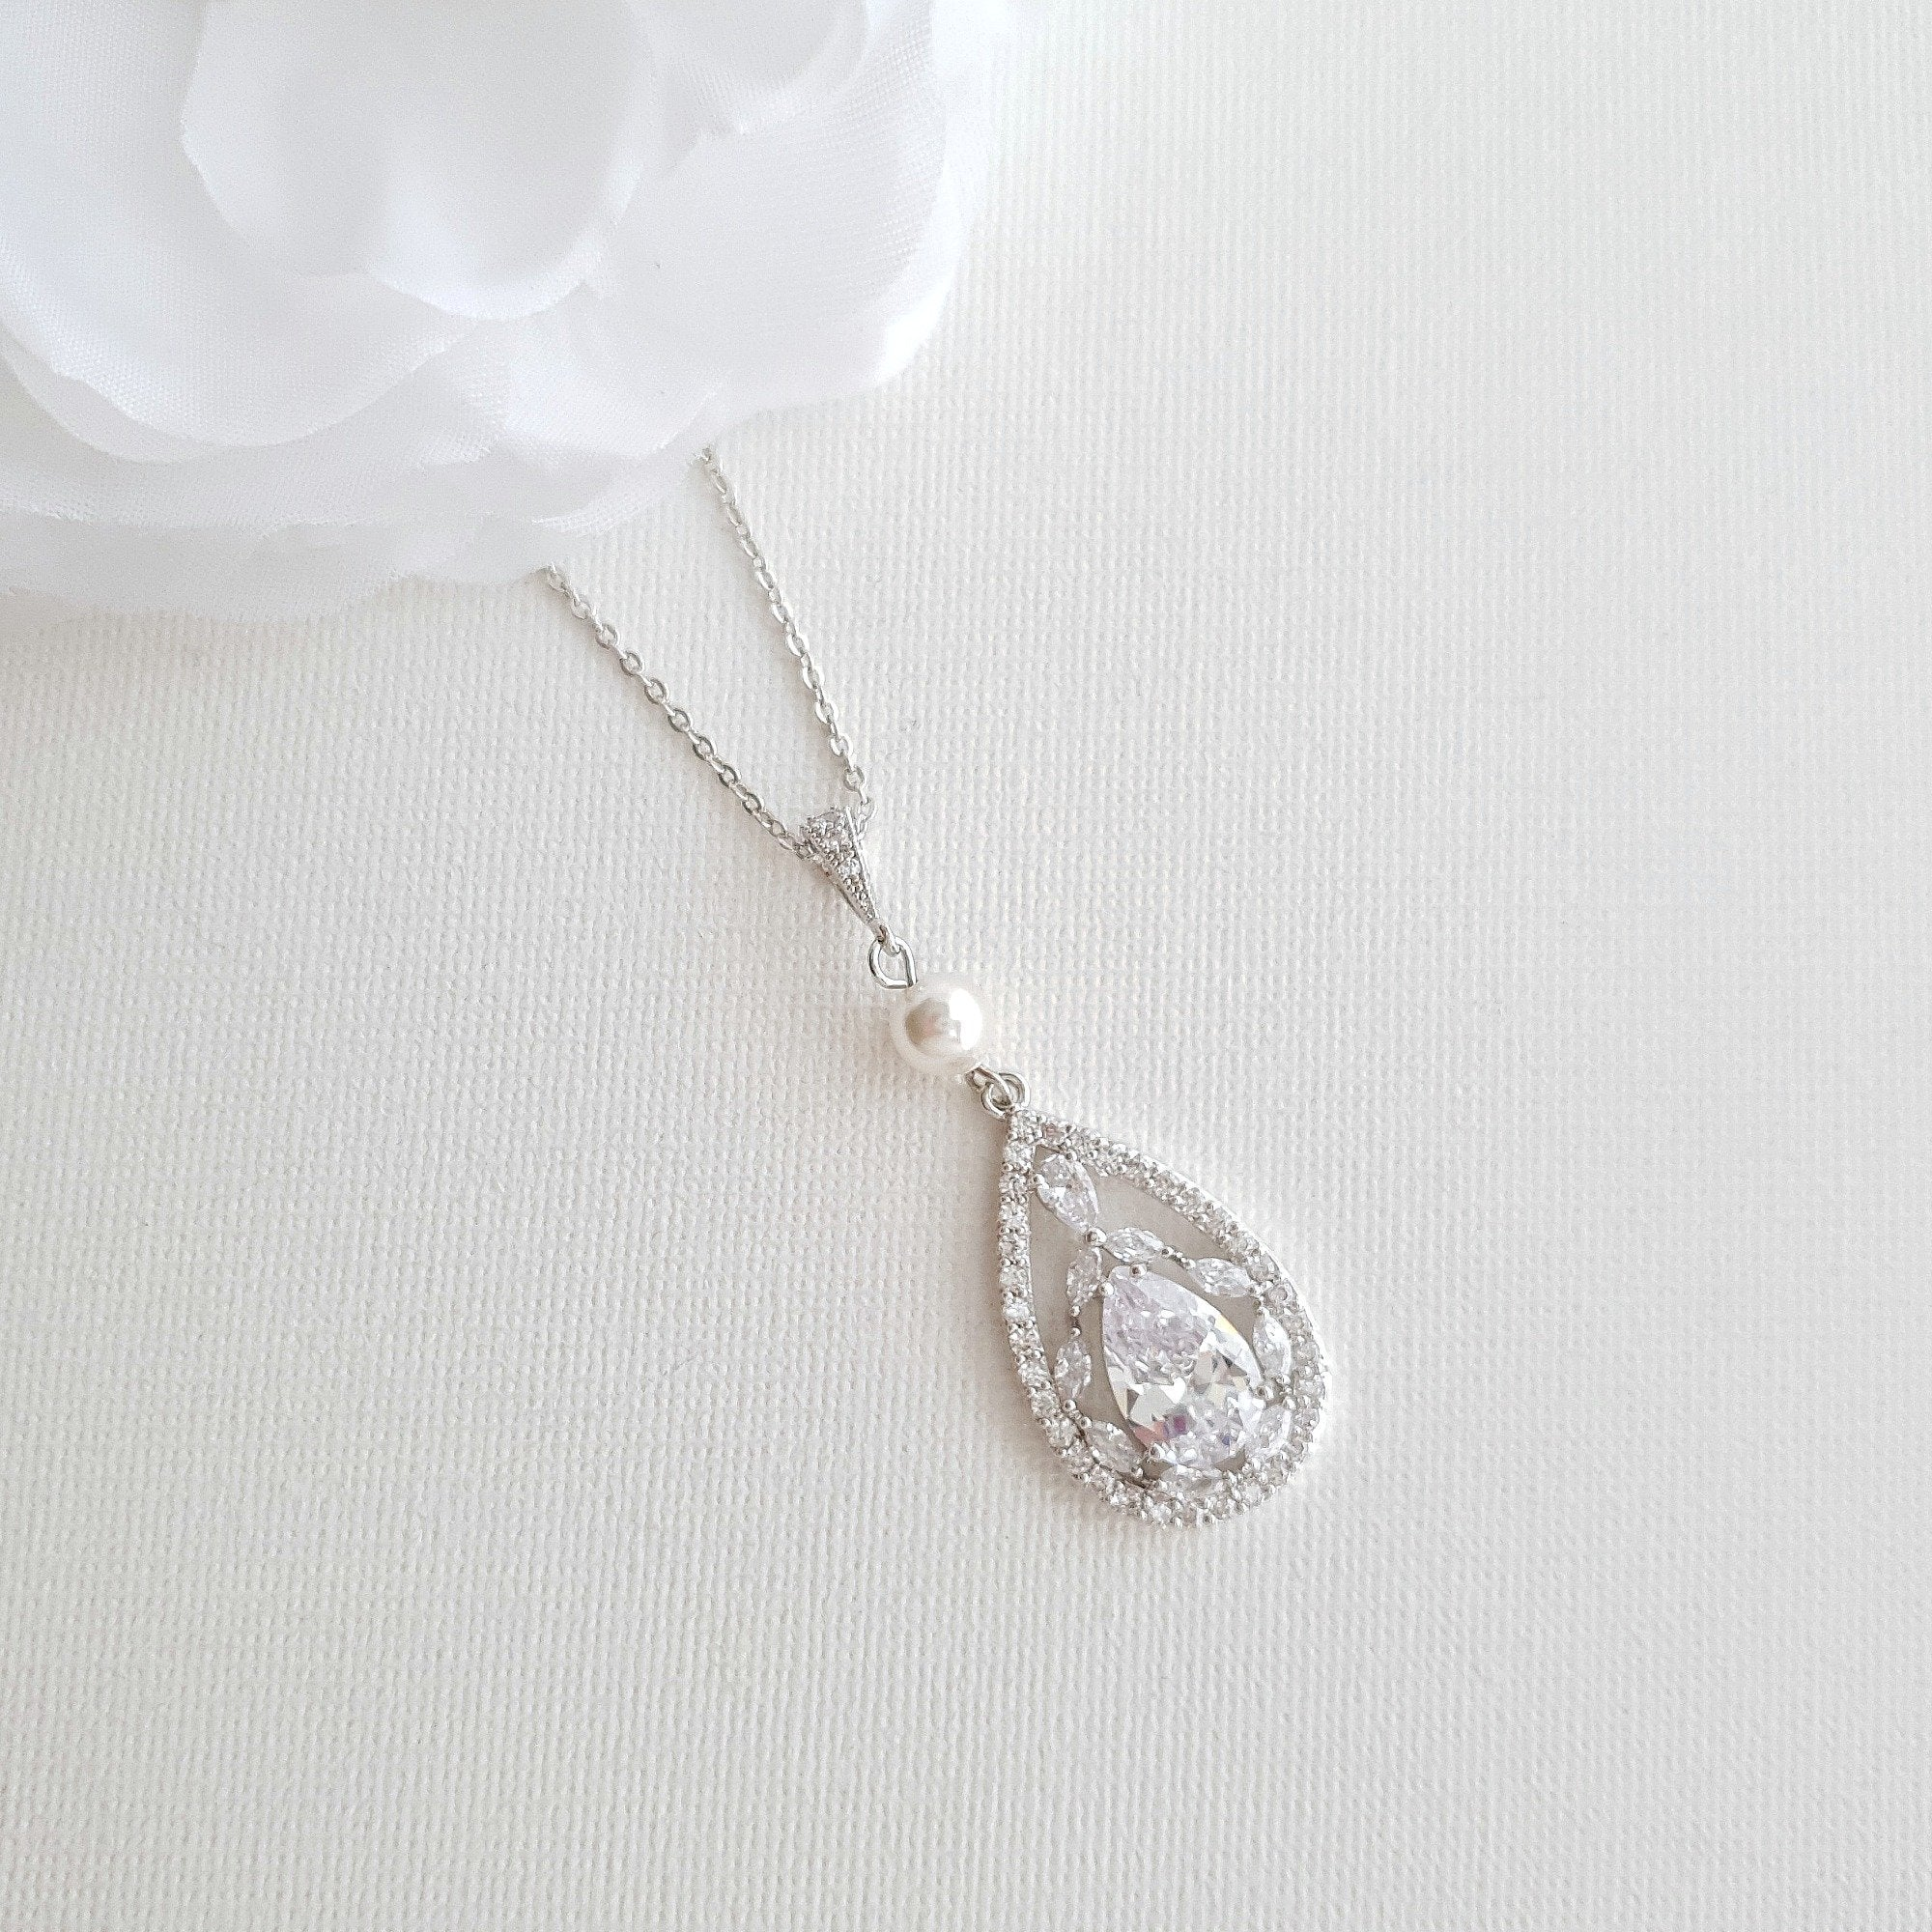 Bridal Pendant Necklace with Teardrop CZ Crystals-Esther - PoetryDesigns